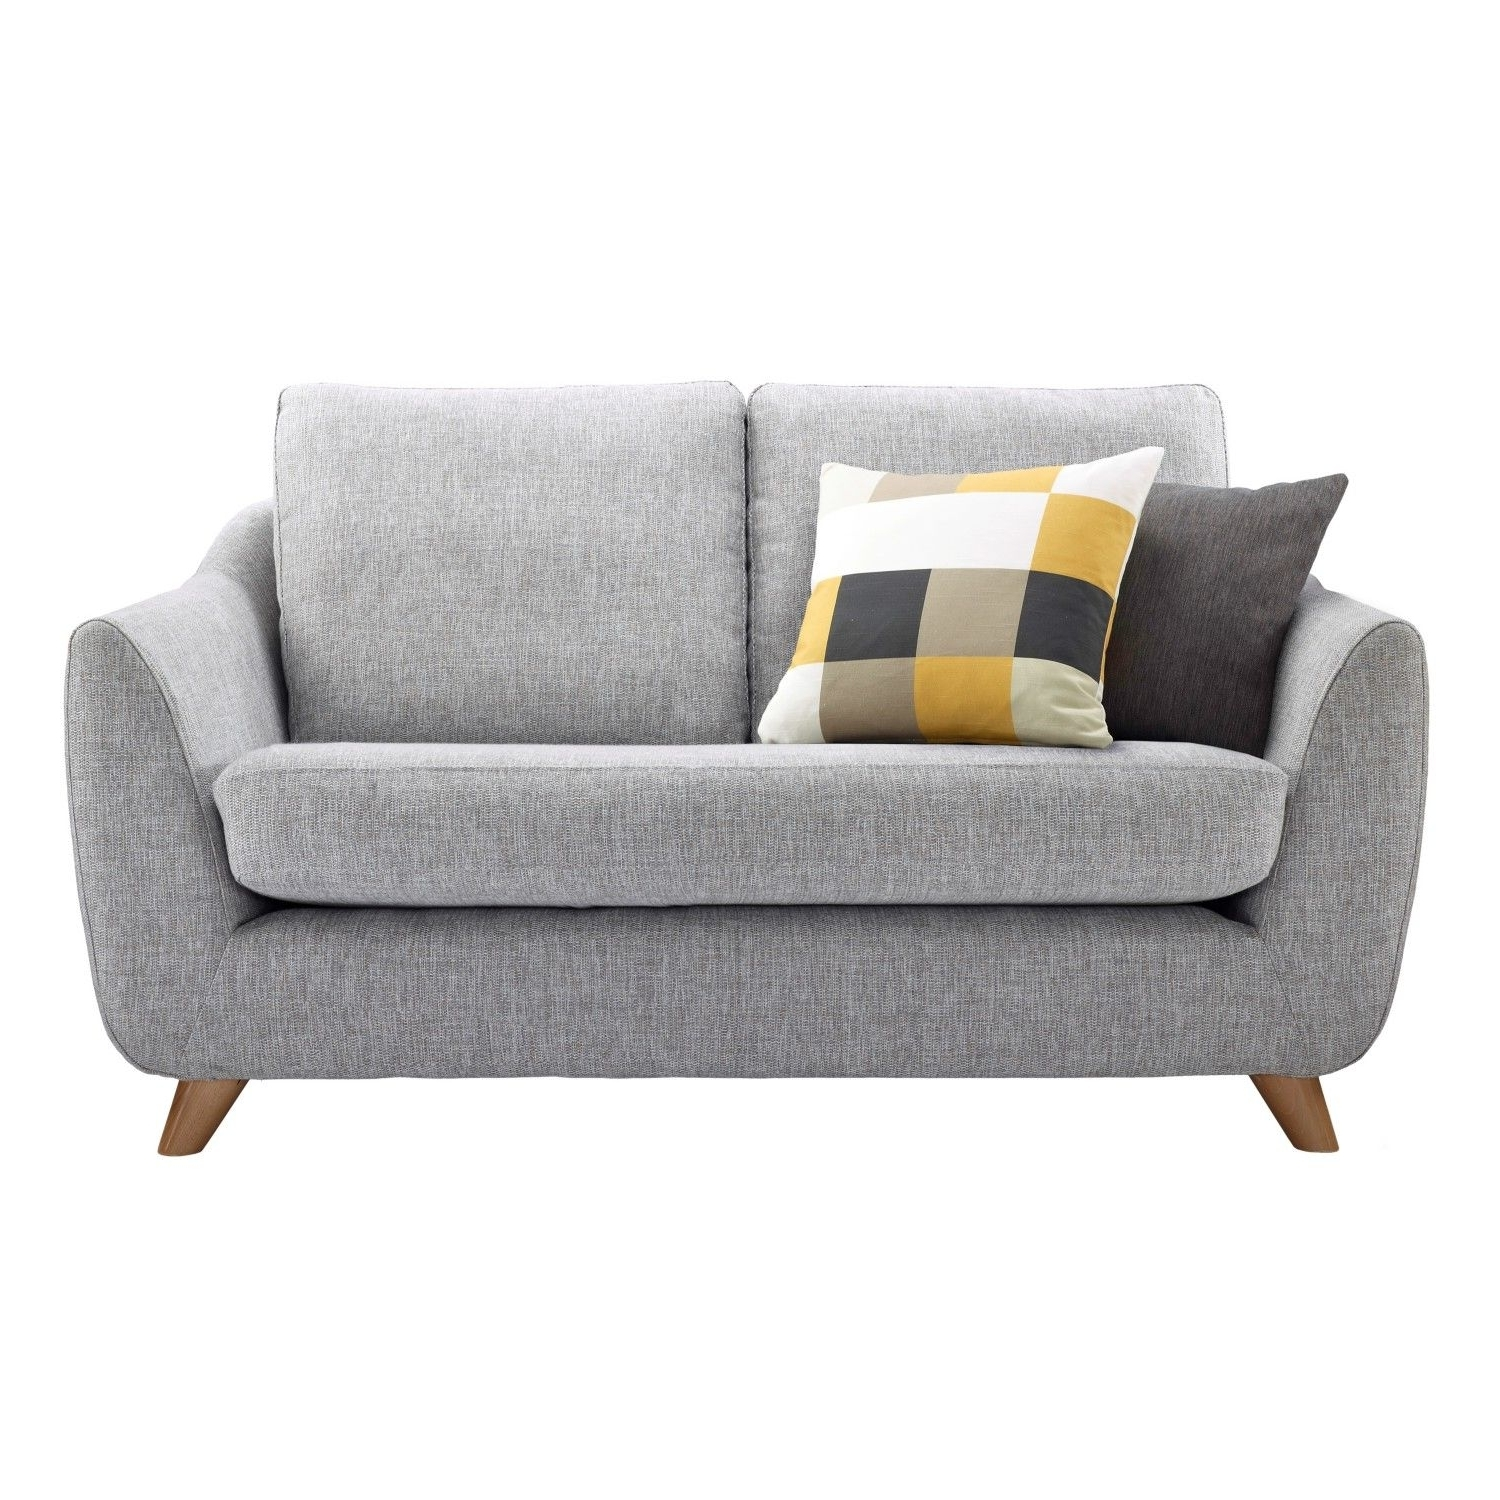 Armchair : Circular Sofa Sleeper Loveseats For Small Spaces Small Throughout Current Small Sofa Chaises (View 14 of 15)